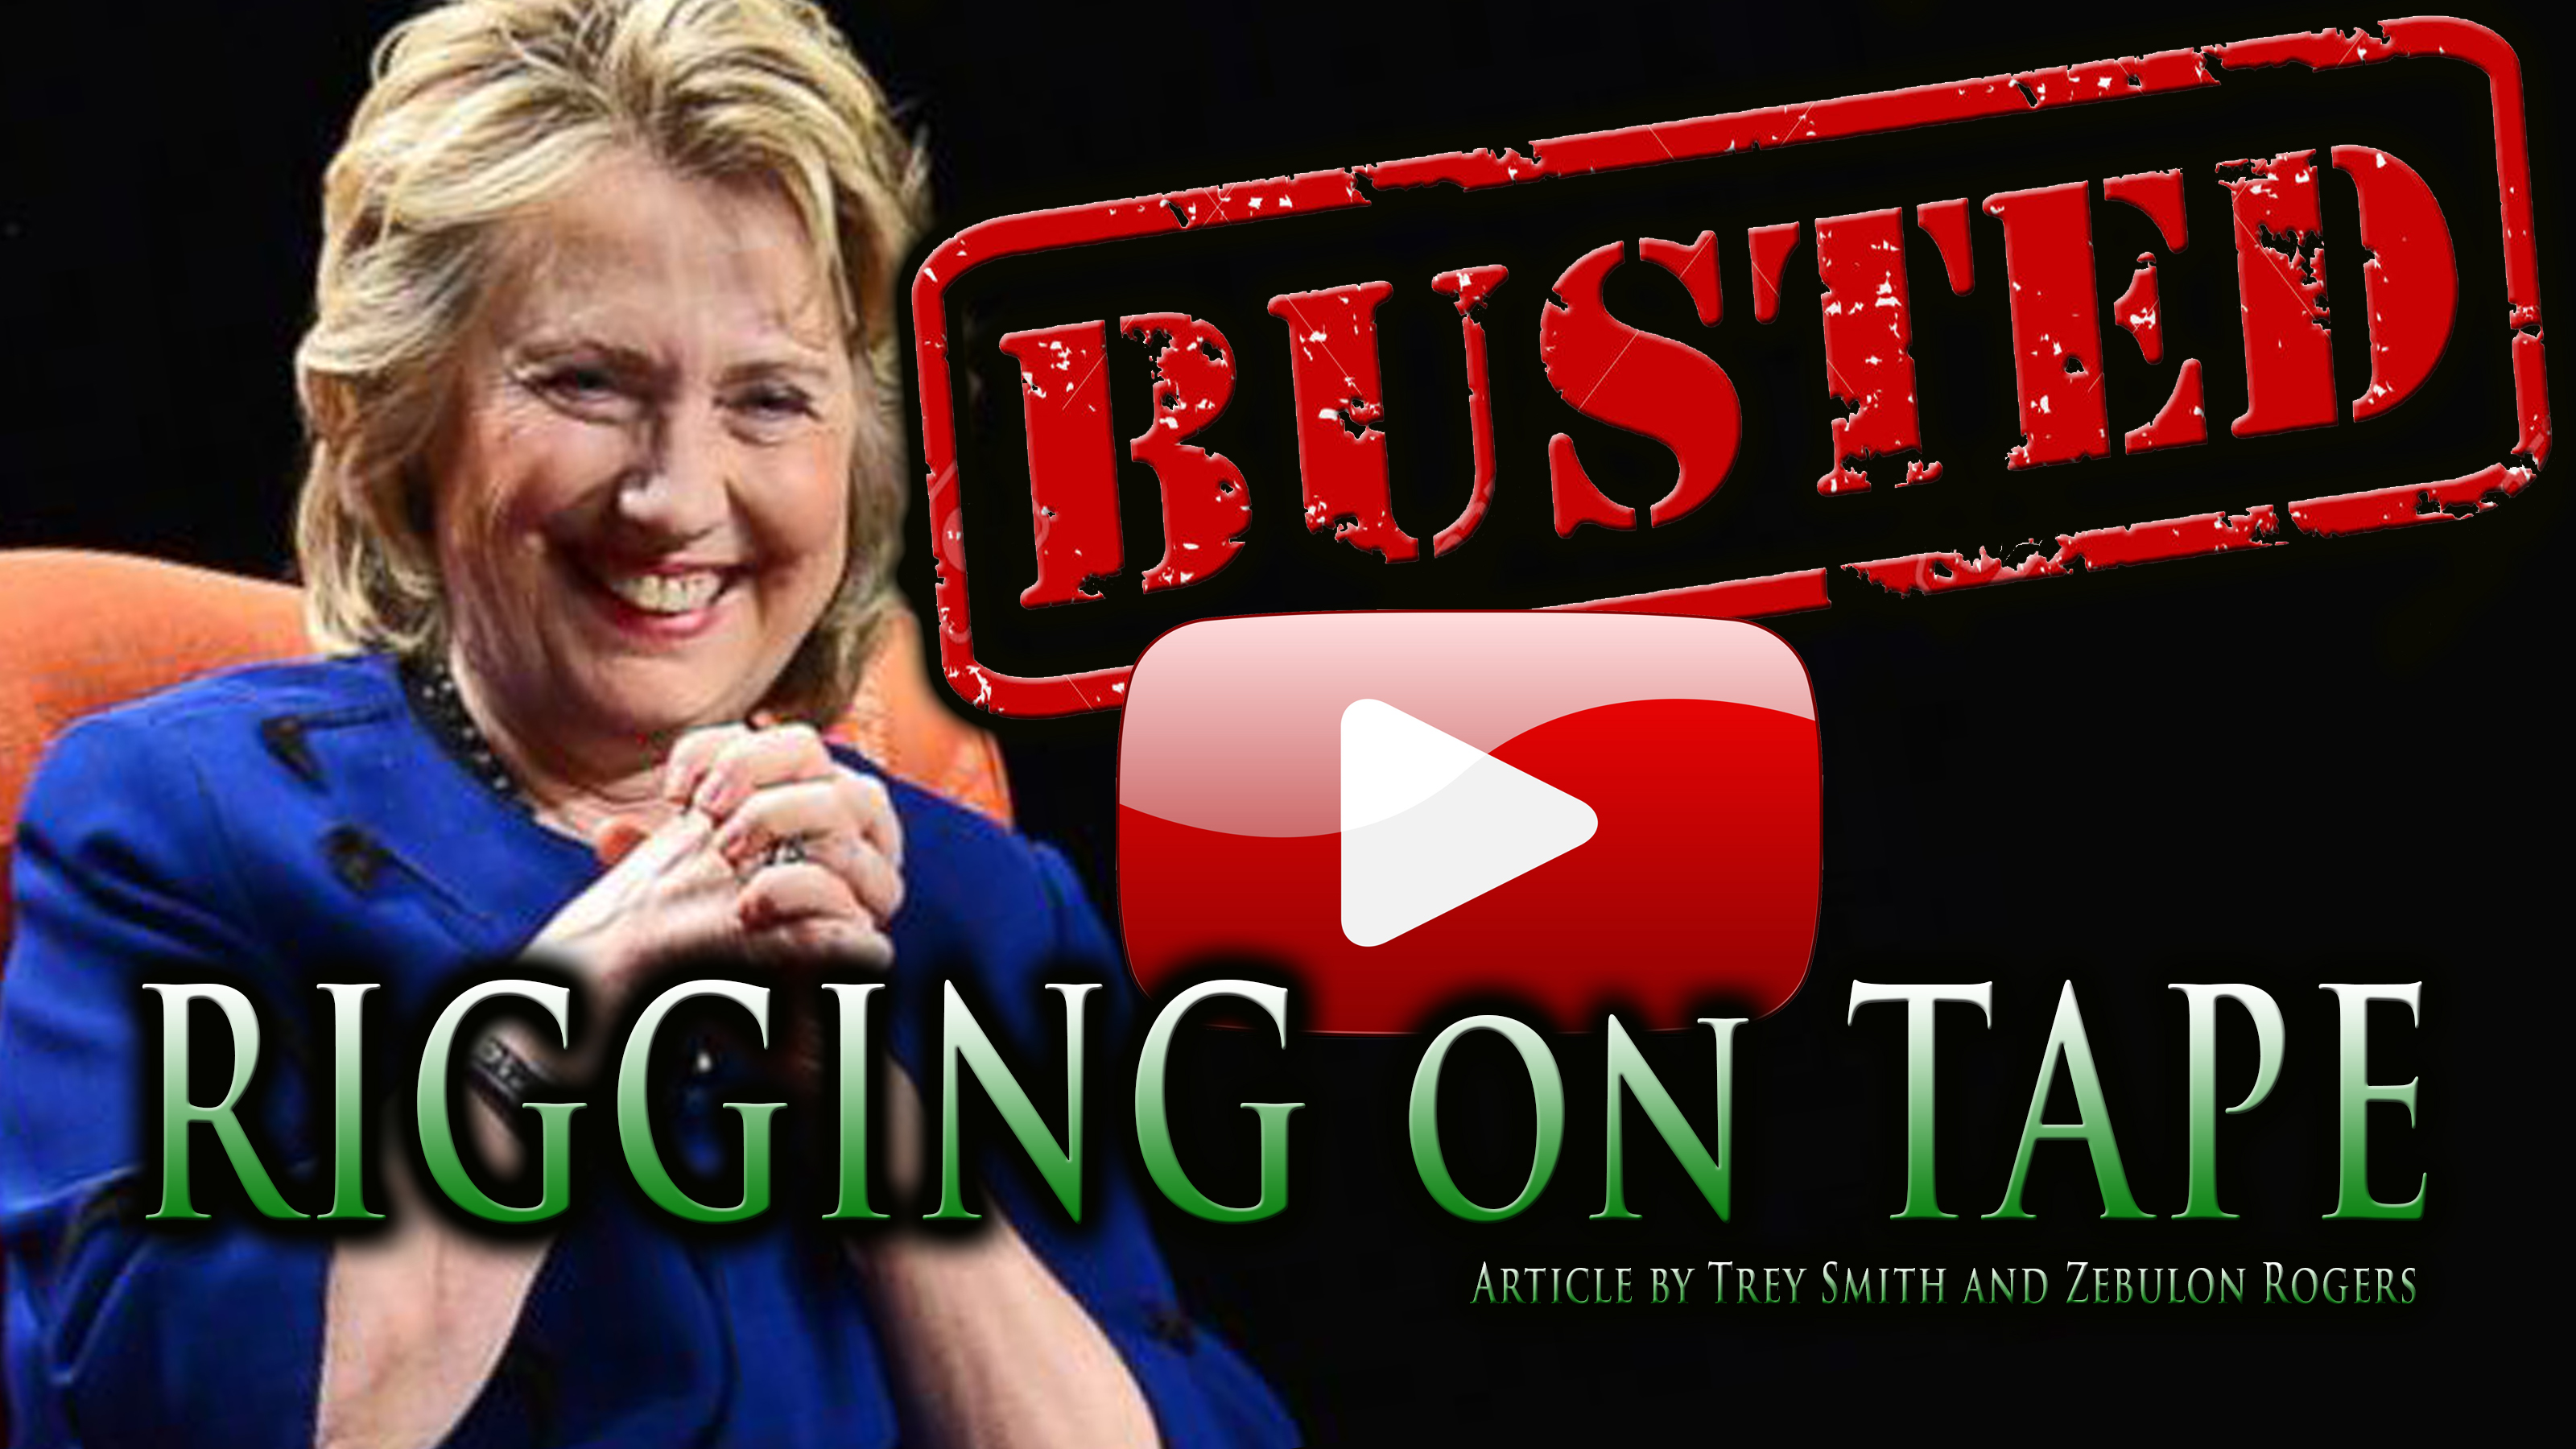 clinton-election-rigging-busted-on-tape-1